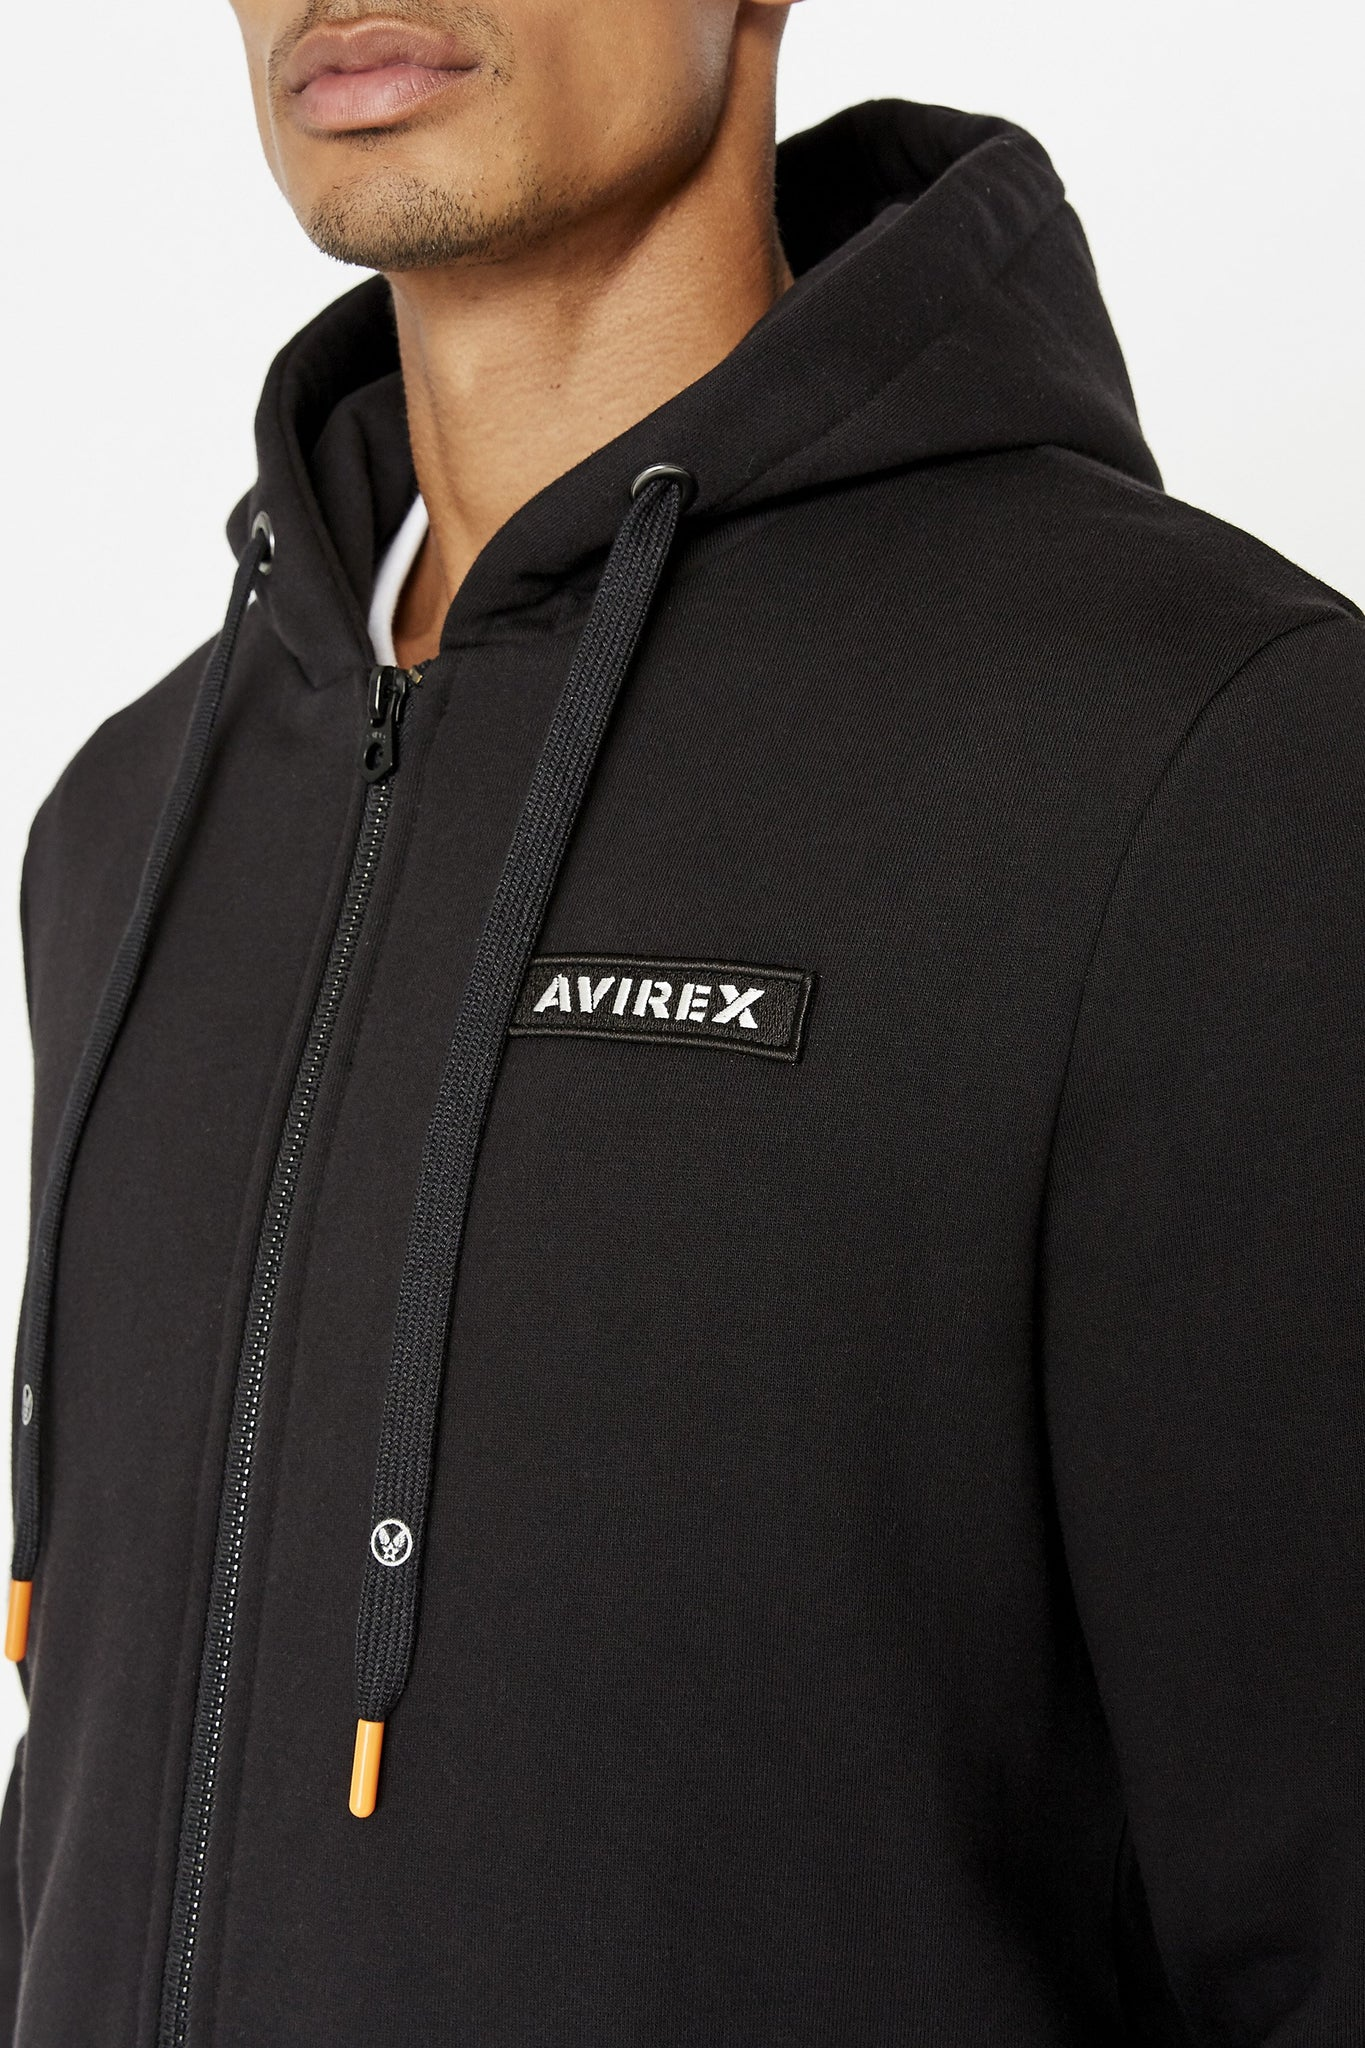 Detailed view of Avirex chest patch and branded draw cords